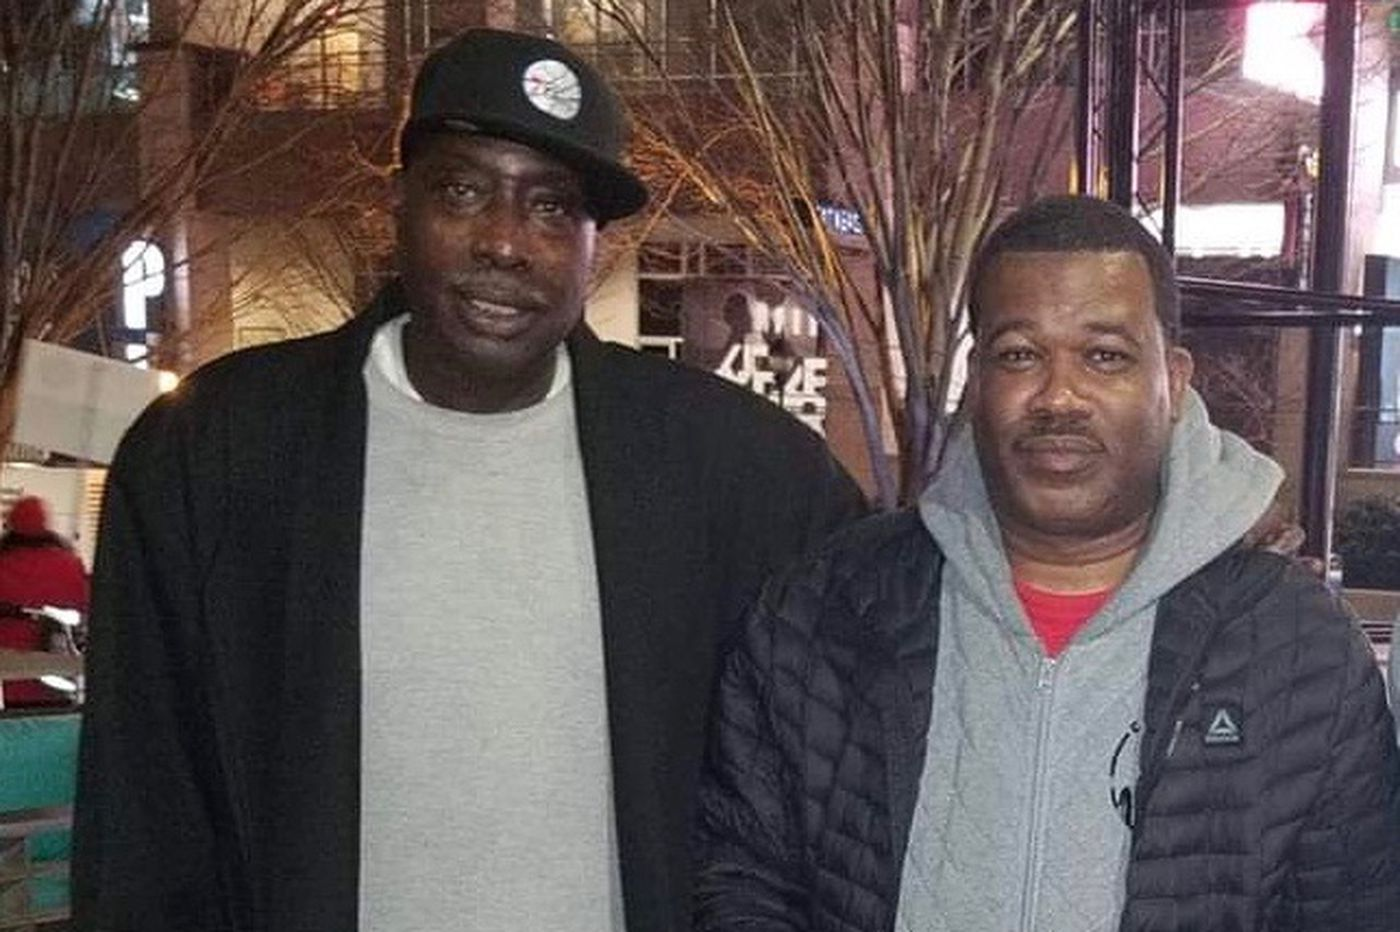 Remembering Lewis Lloyd, a Philly hoops legend